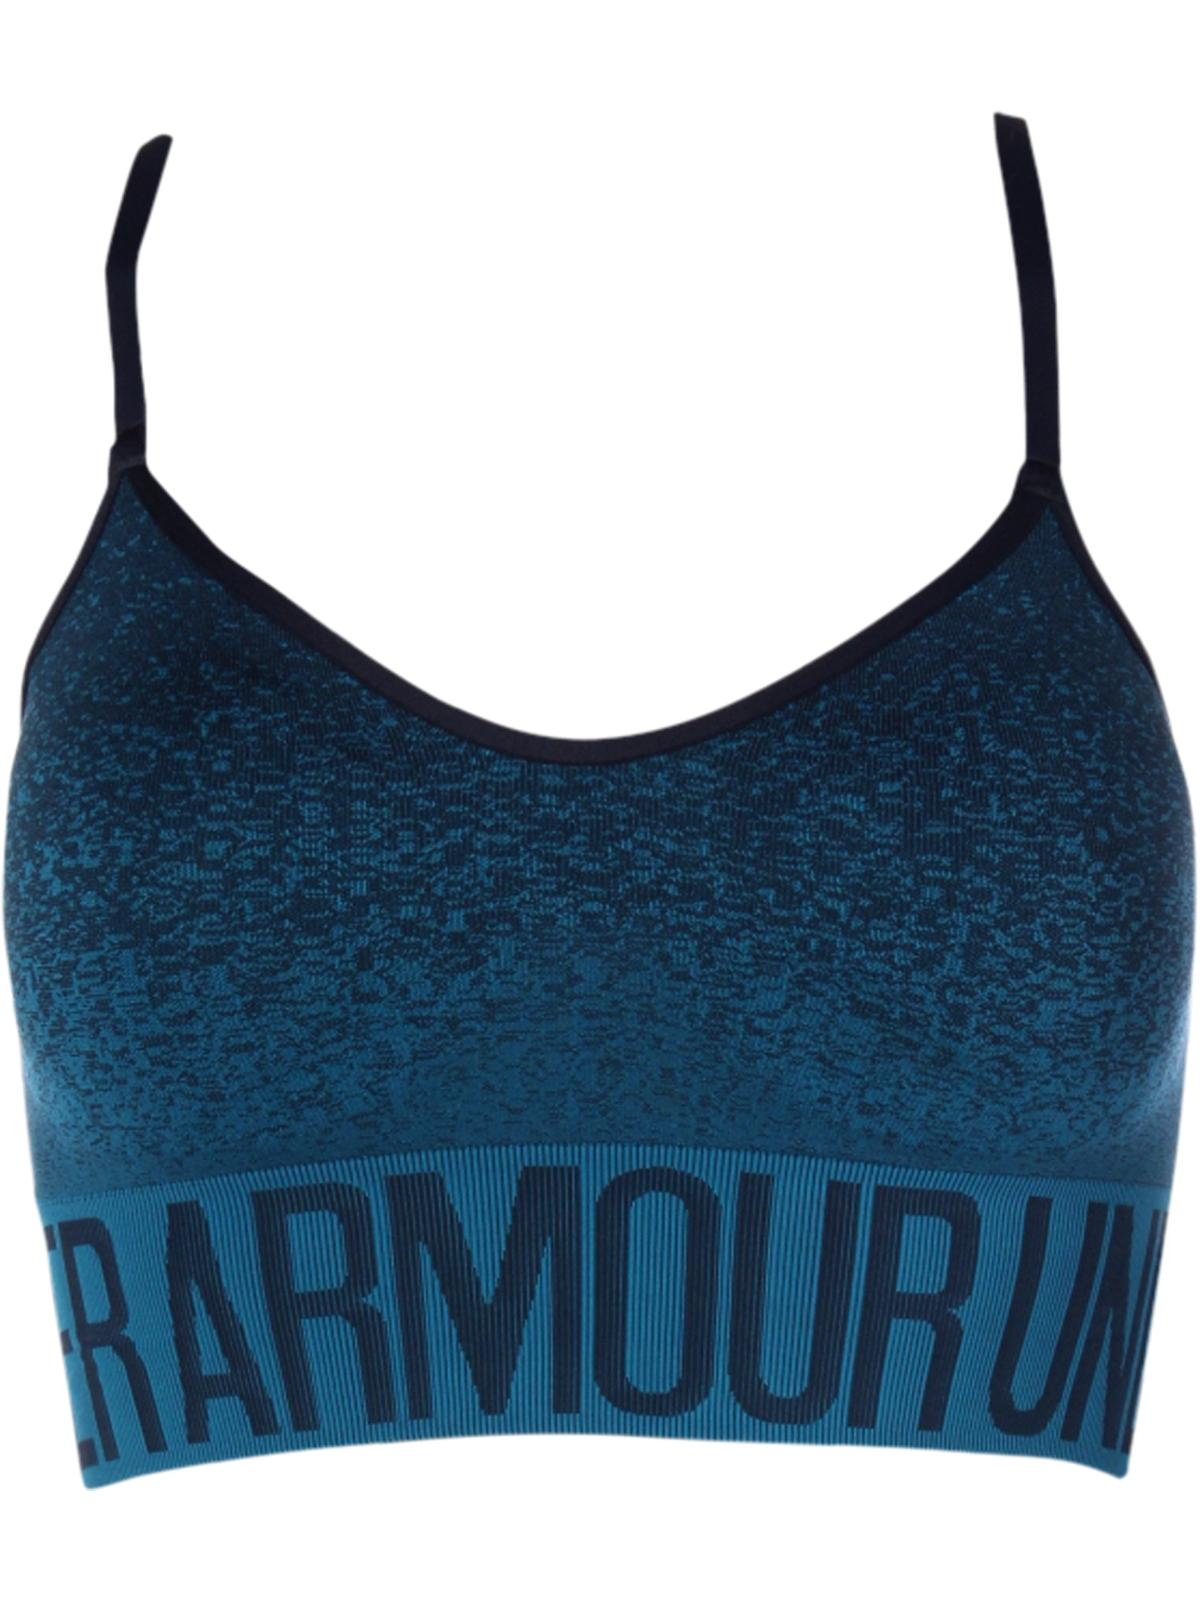 Under Armour Womens Racerback Low-Impact Sports Bra